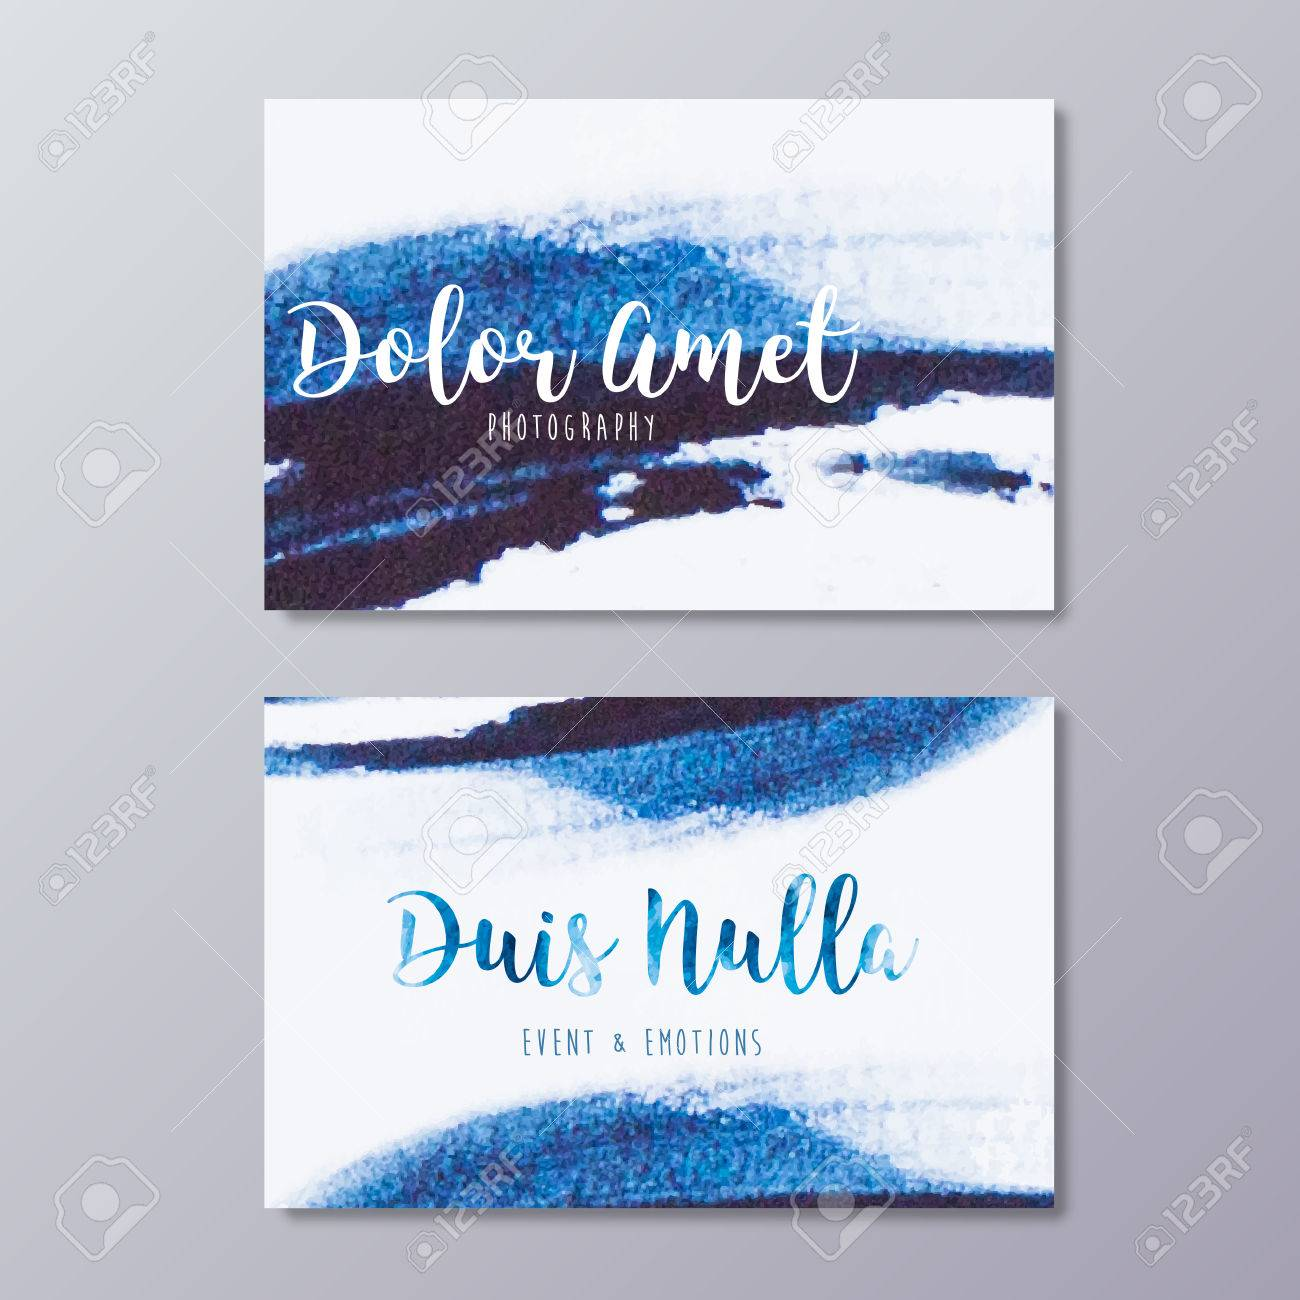 Premade photography business card design hand drawn abstract premade photography business card design hand drawn abstract blue watercolor stroke texture and wedding event colourmoves